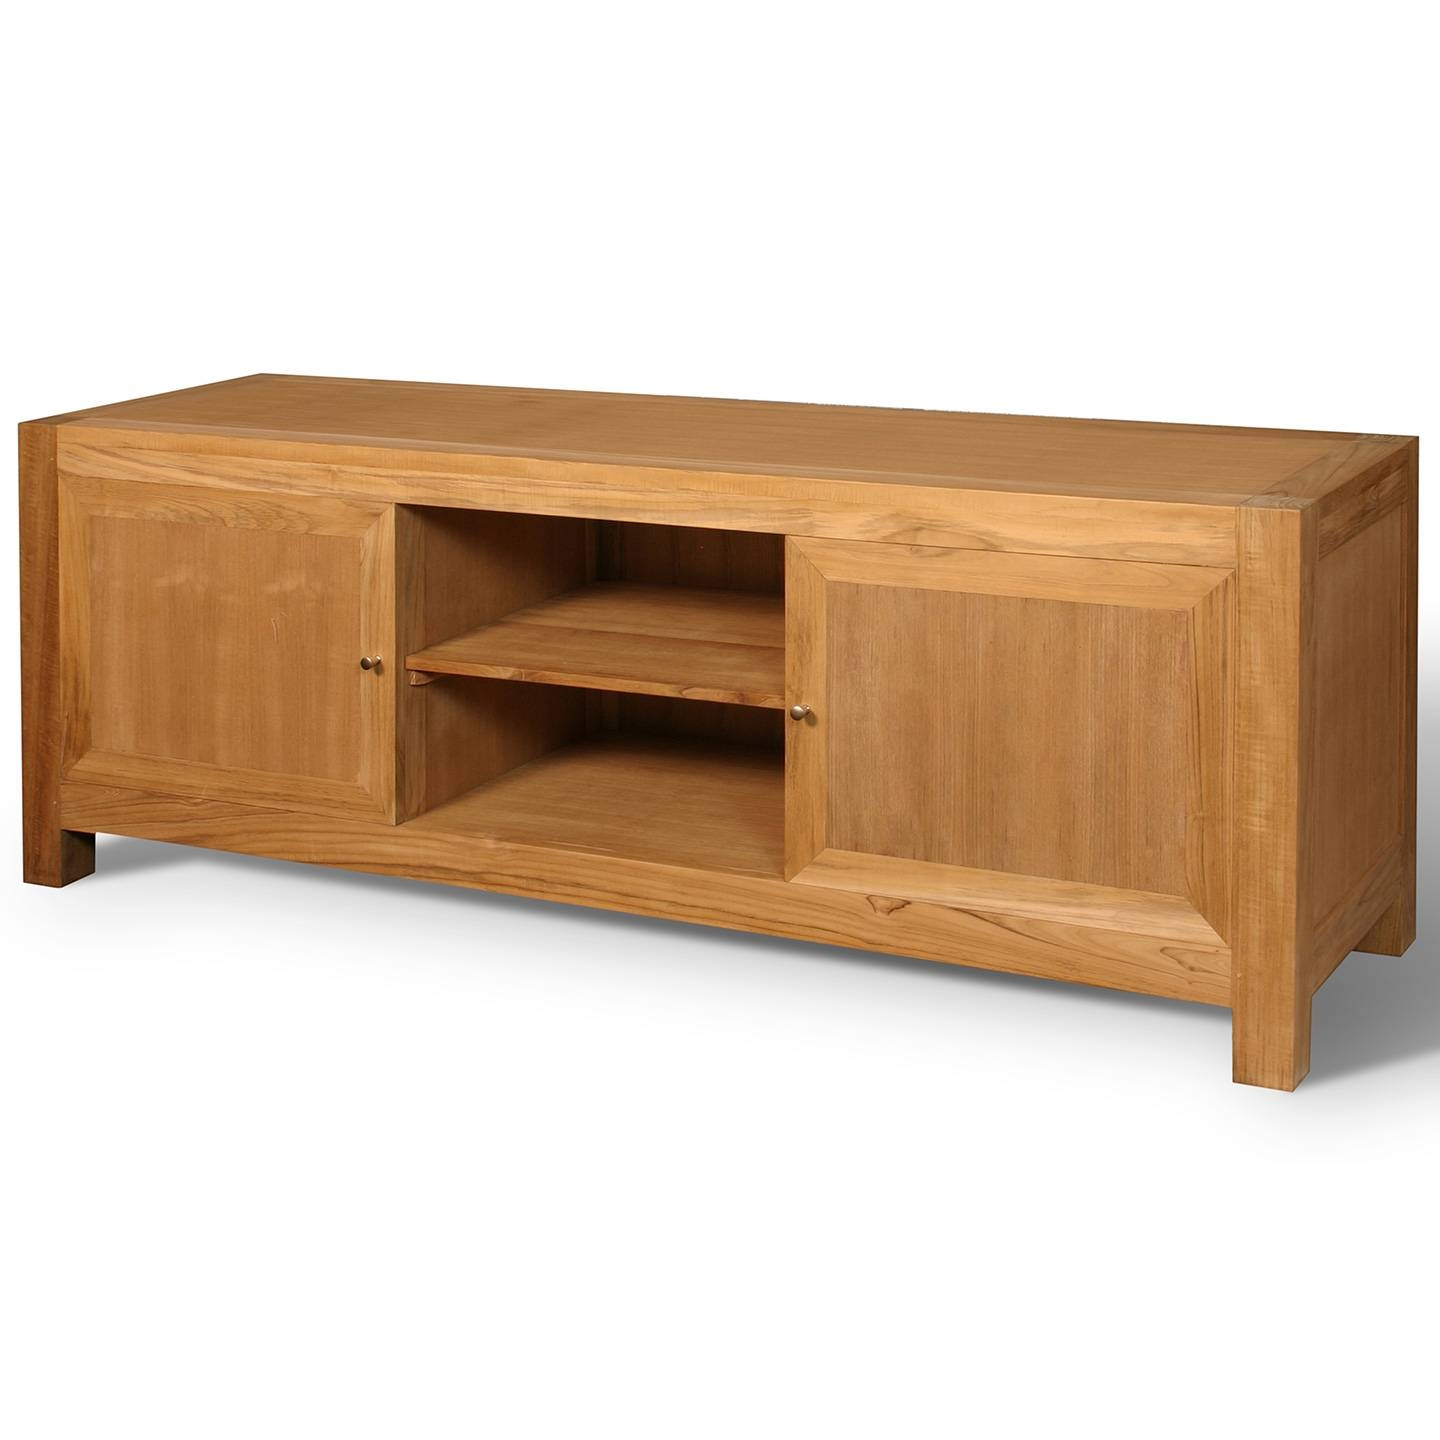 15 Best Collection Of Wooden Tv Cabinets